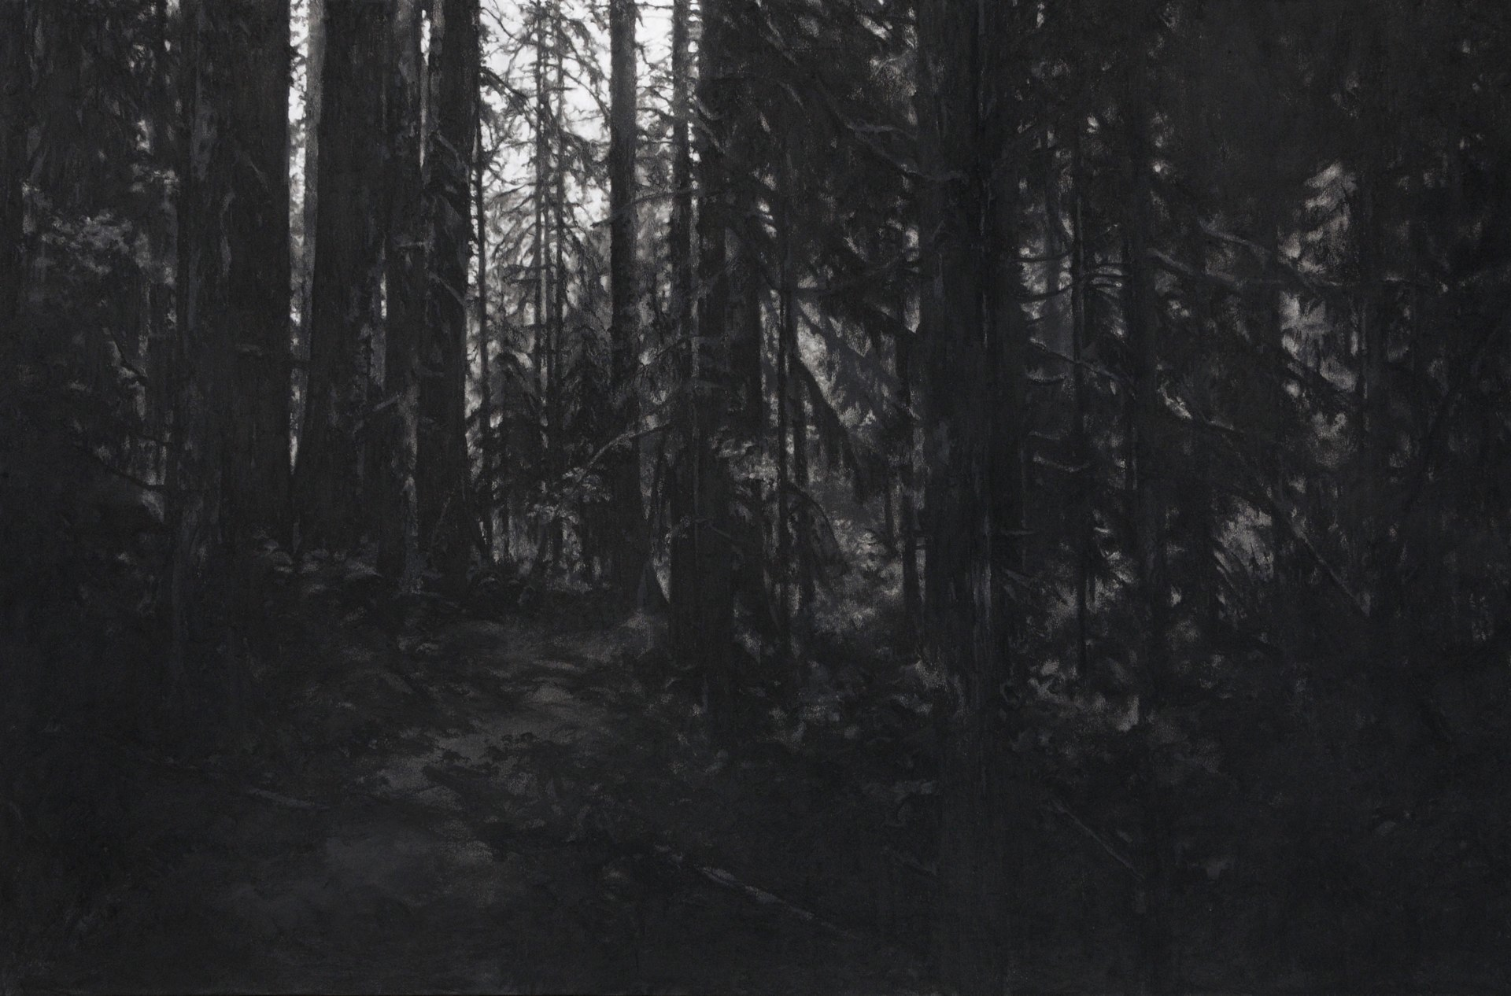 As certain dark things are loved , 2012. Charcoal on mounted paper.32 x 48 inches. Private collection.